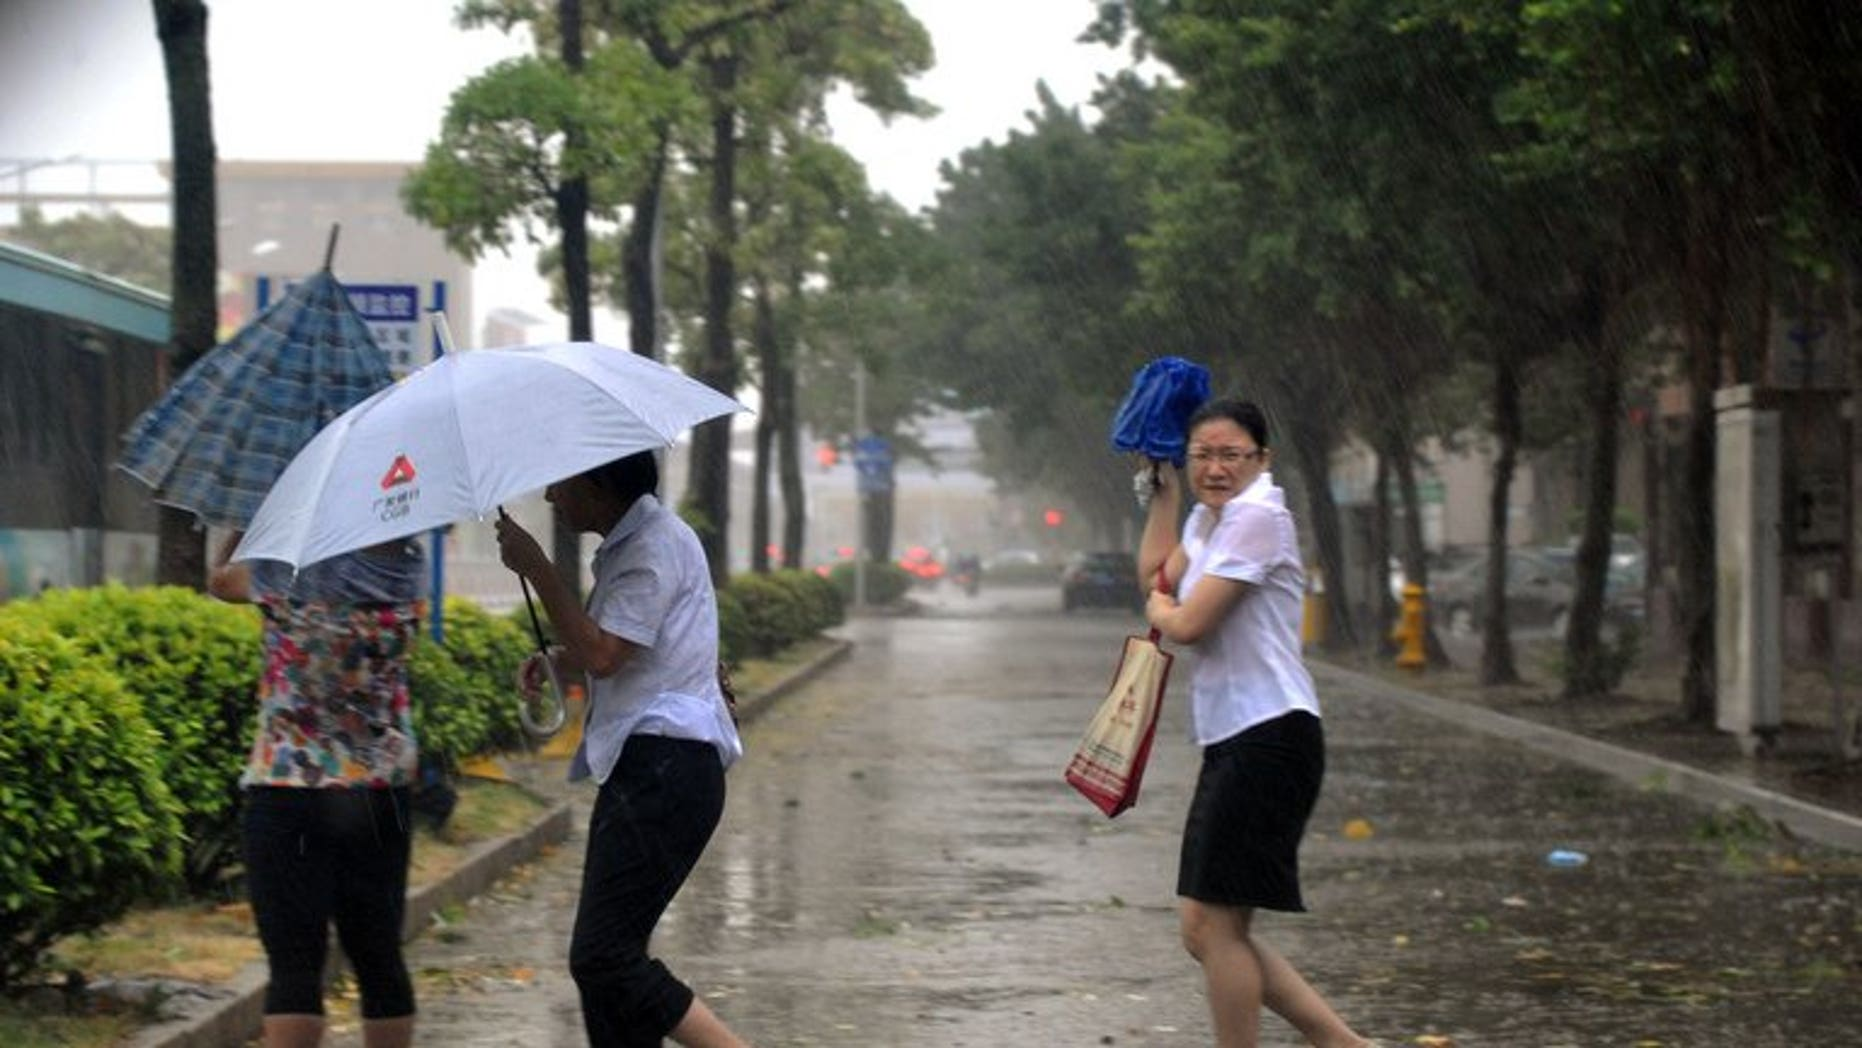 People take cover in Shantou, southern China, on September 22, 2013. Typhoon Usagi has left 25 people dead in southern China's Guangdong province, state media reported.